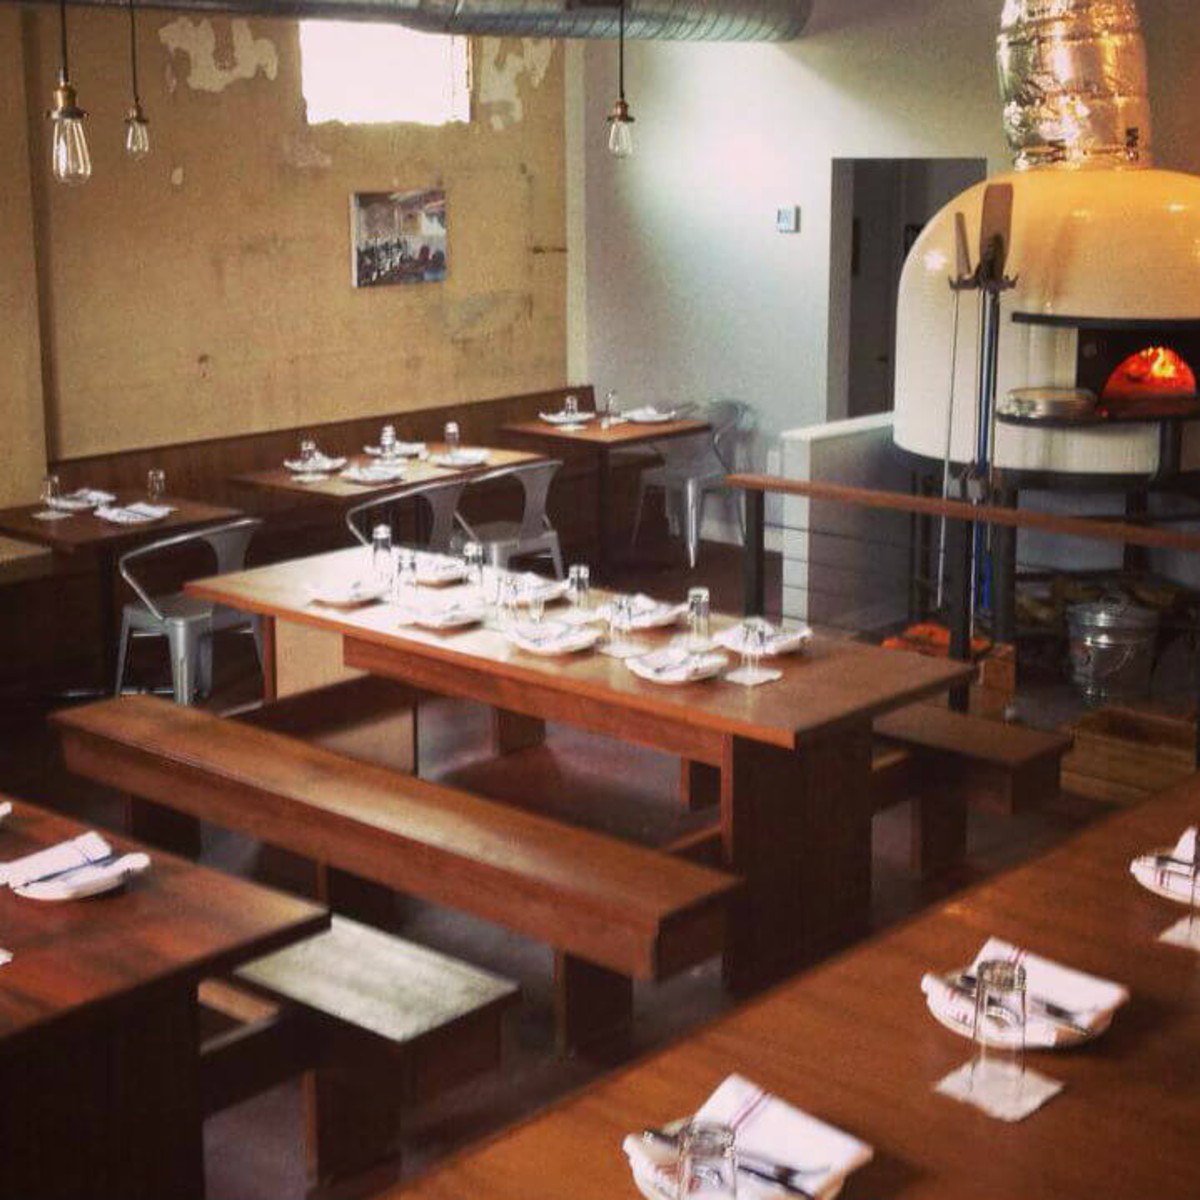 Bufalina pizza restaurant interior with brick oven